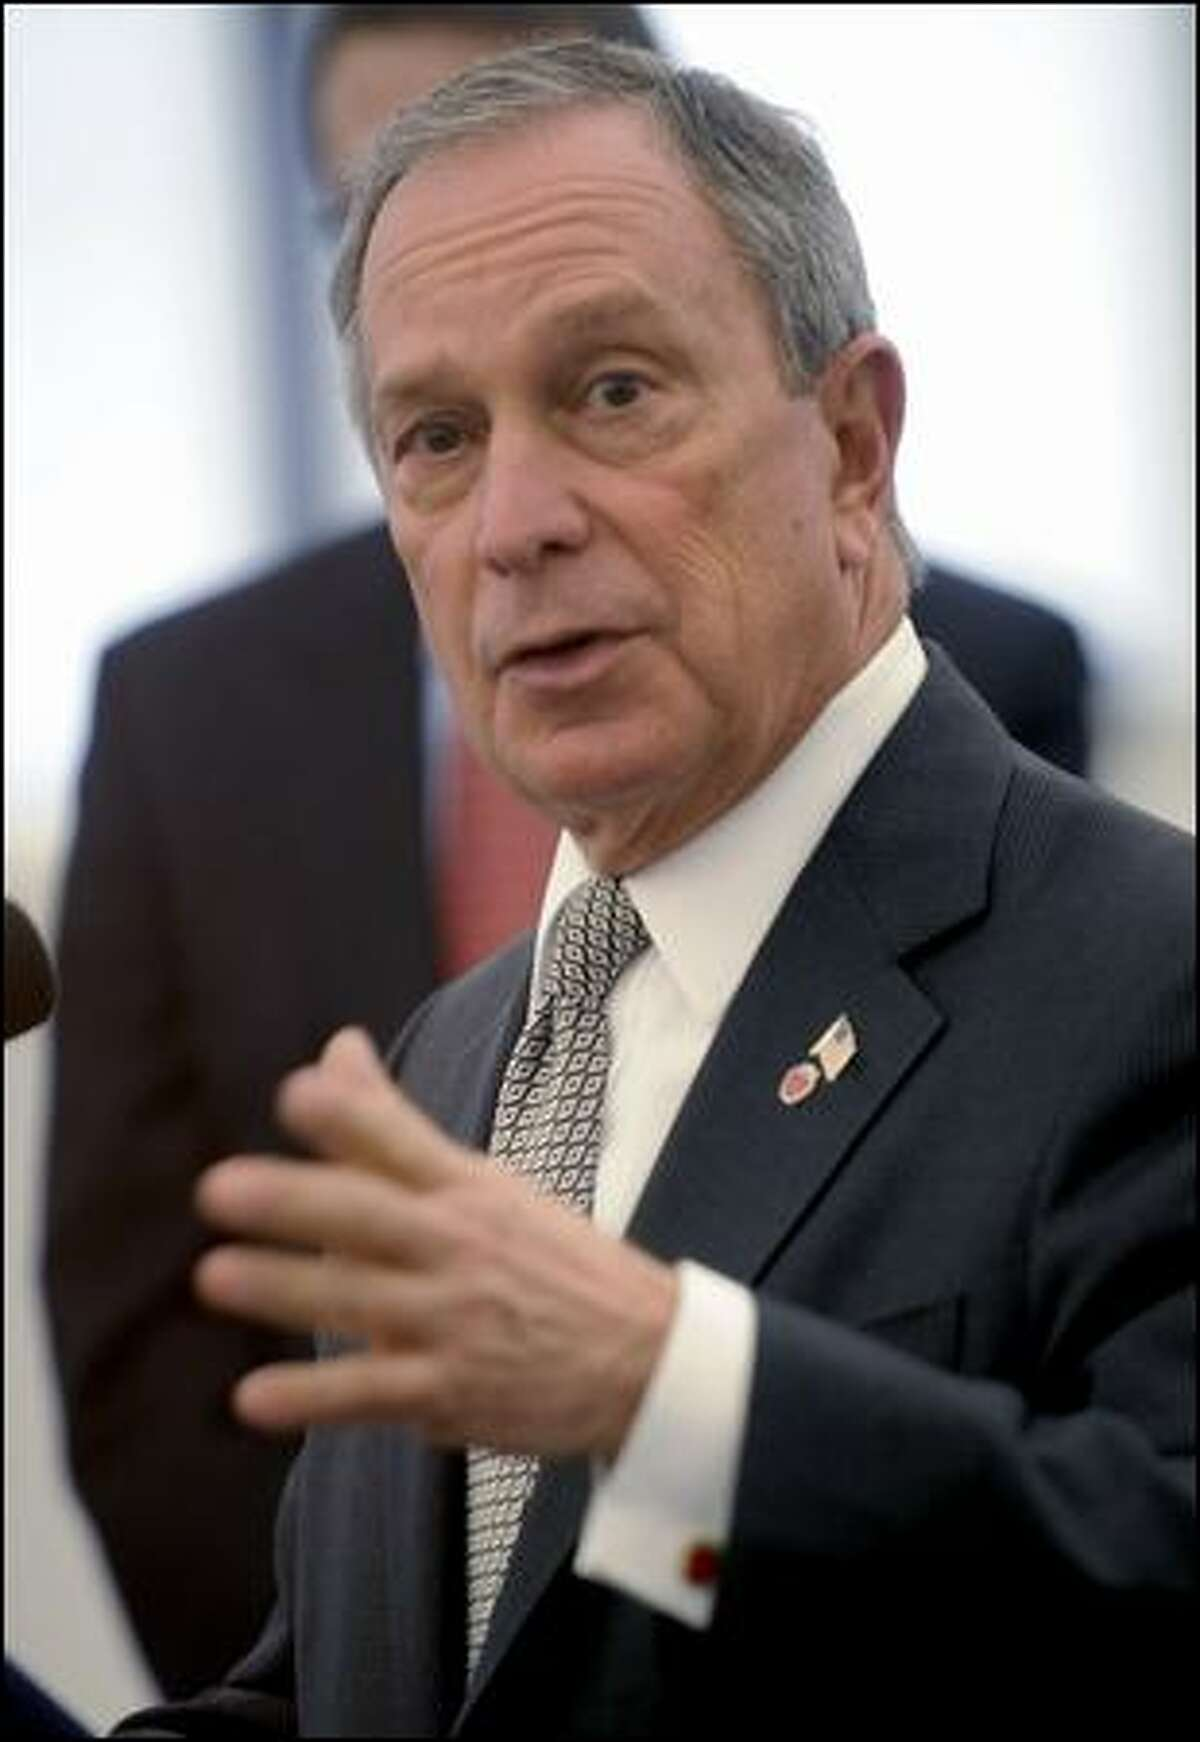 Ex-New York City Mayor Michael Bloomberg has already aired more than $130 million worth of TV ads.